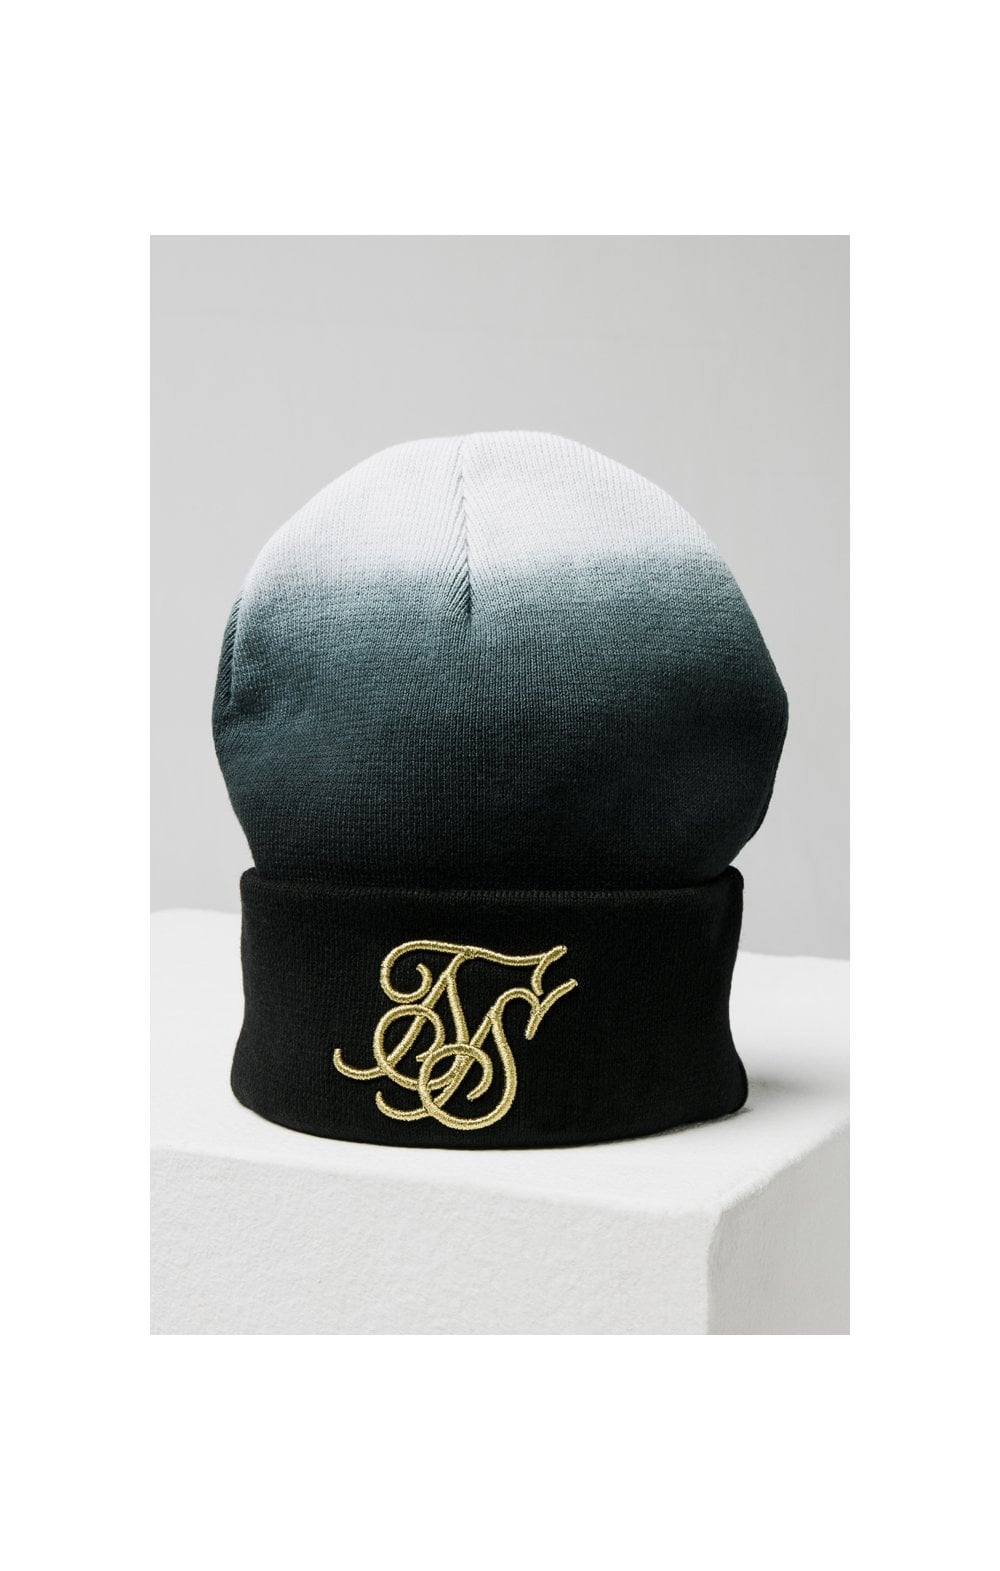 SikSilk Ombre Beanie - Back & White (2)